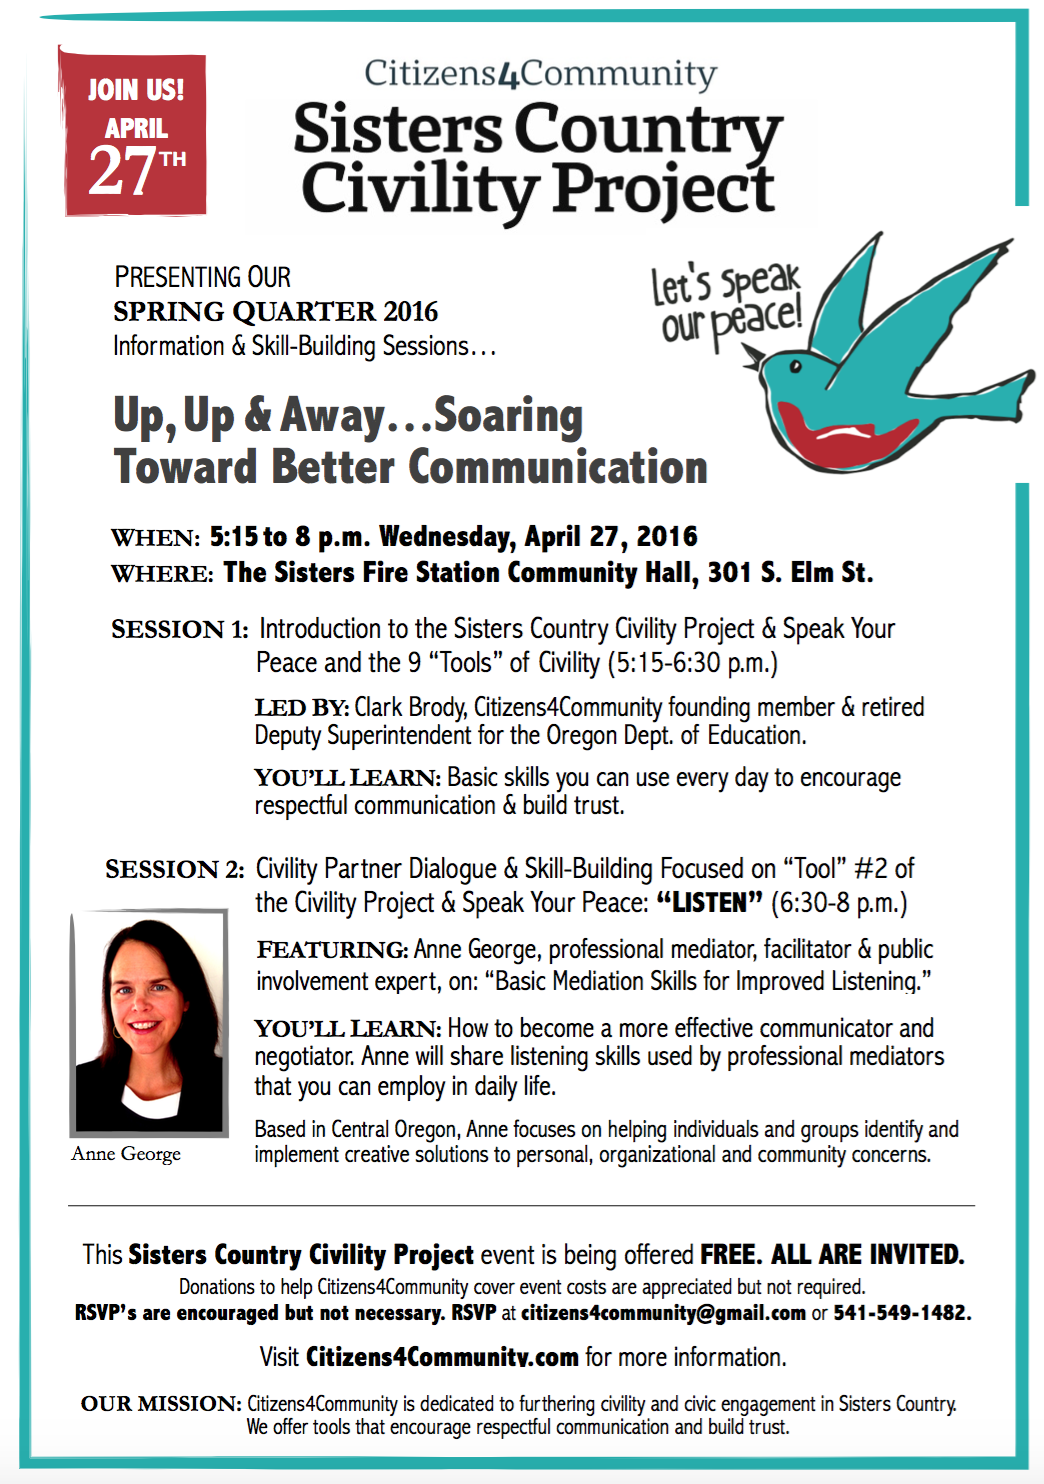 To view the full-size flyer, click     HERE     or on the image above.